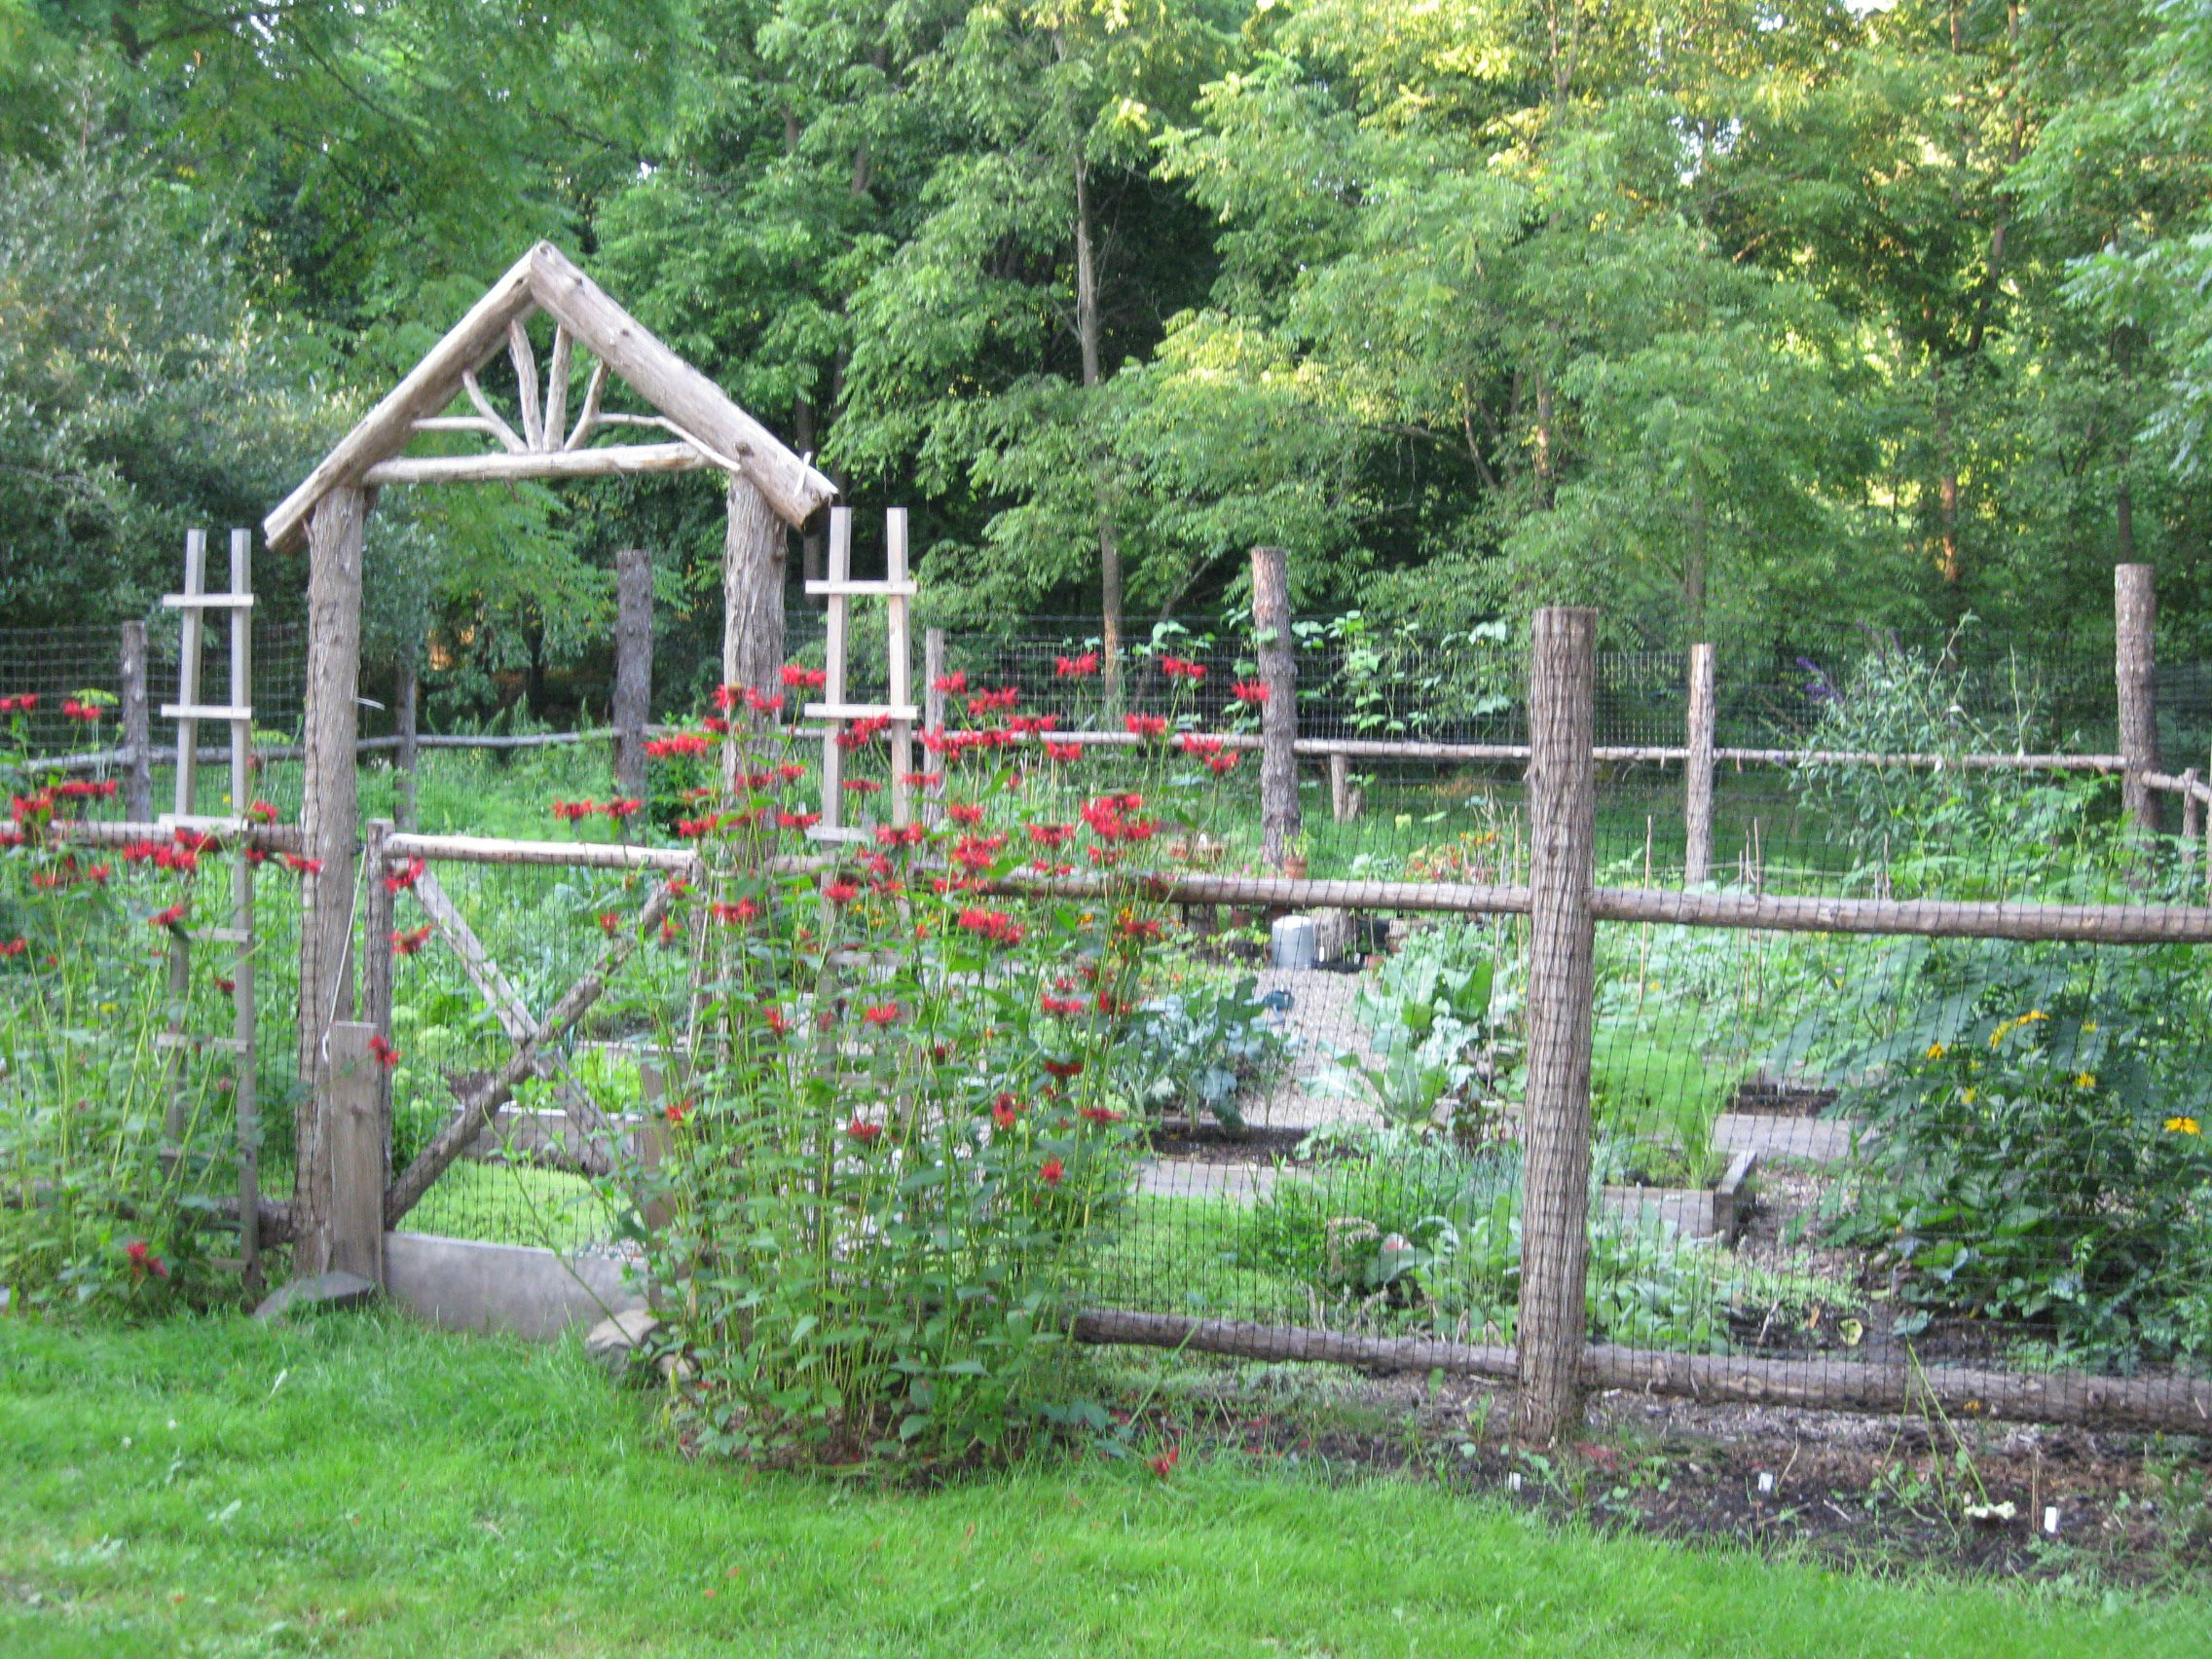 Vegetable Garden Surrounded By A Split Rail Fence To Keep The Rabbits And  Dear Away. More